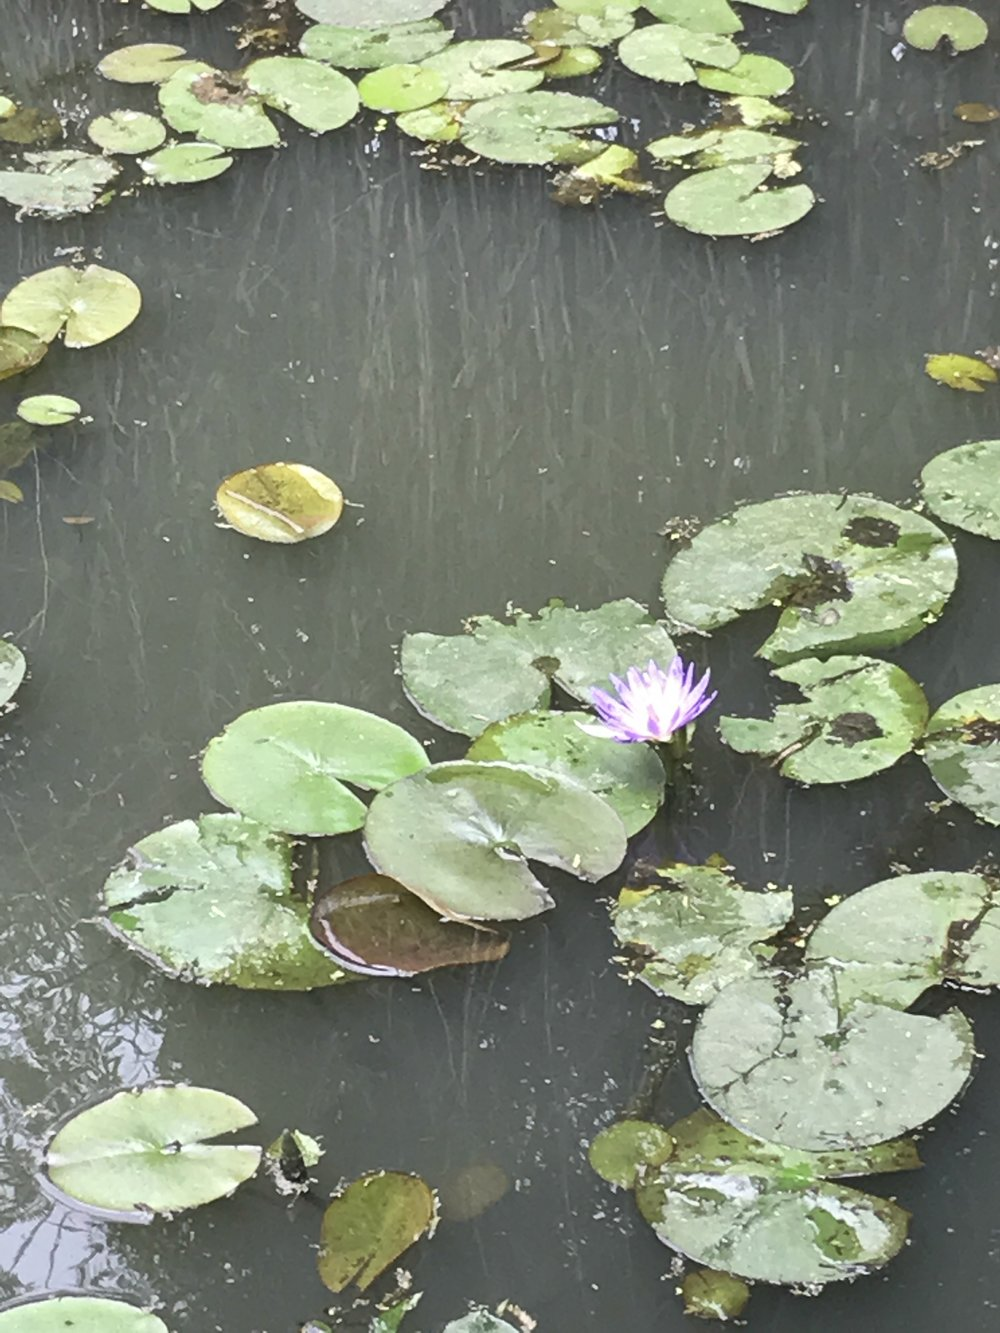 Lily pads at the entrance